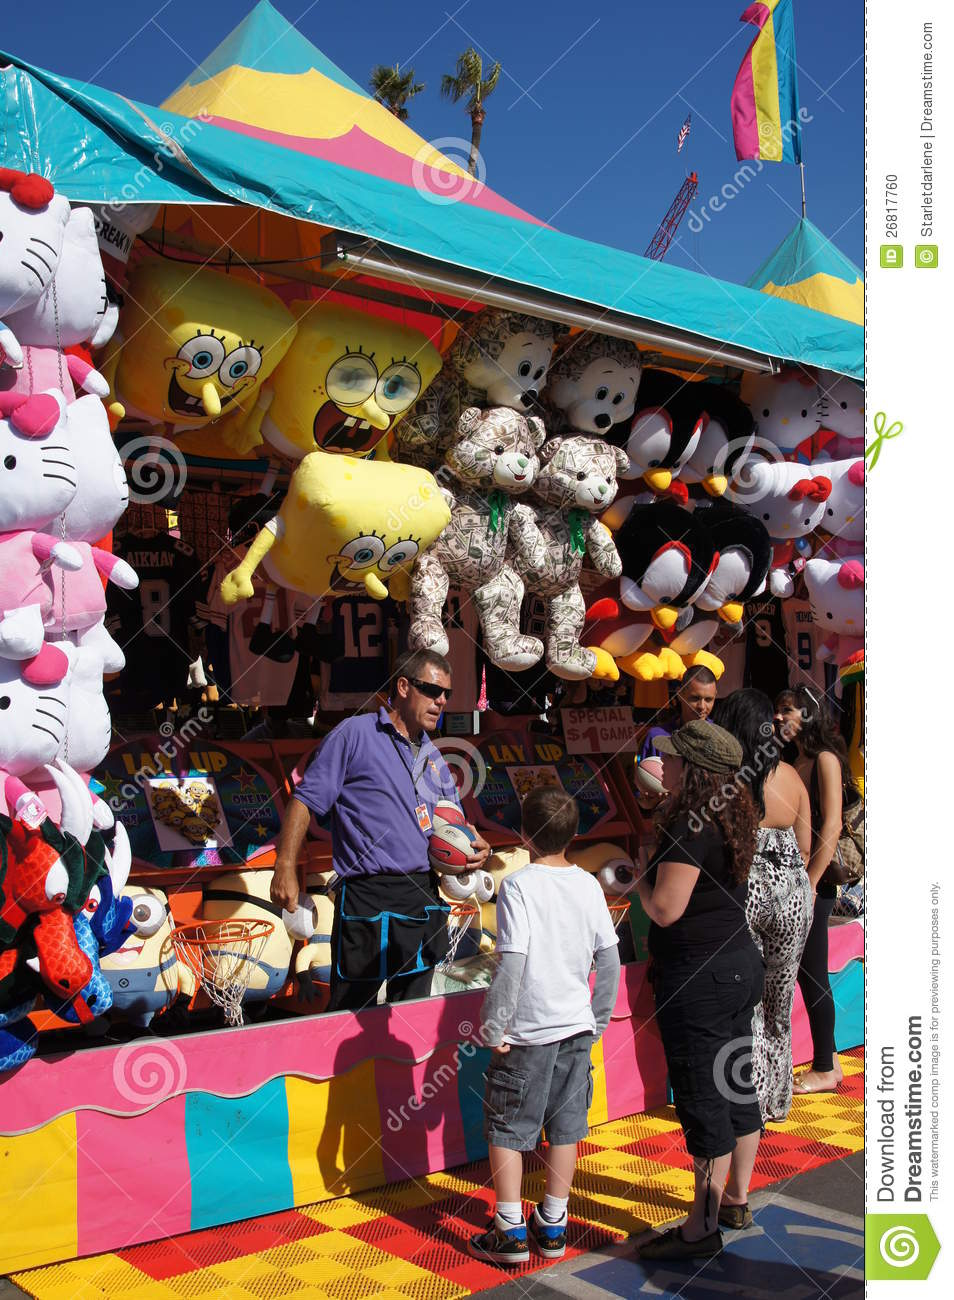 Best Business Credit Cards >> Games At The Fair Or Carnival Editorial Image - Image: 26817760